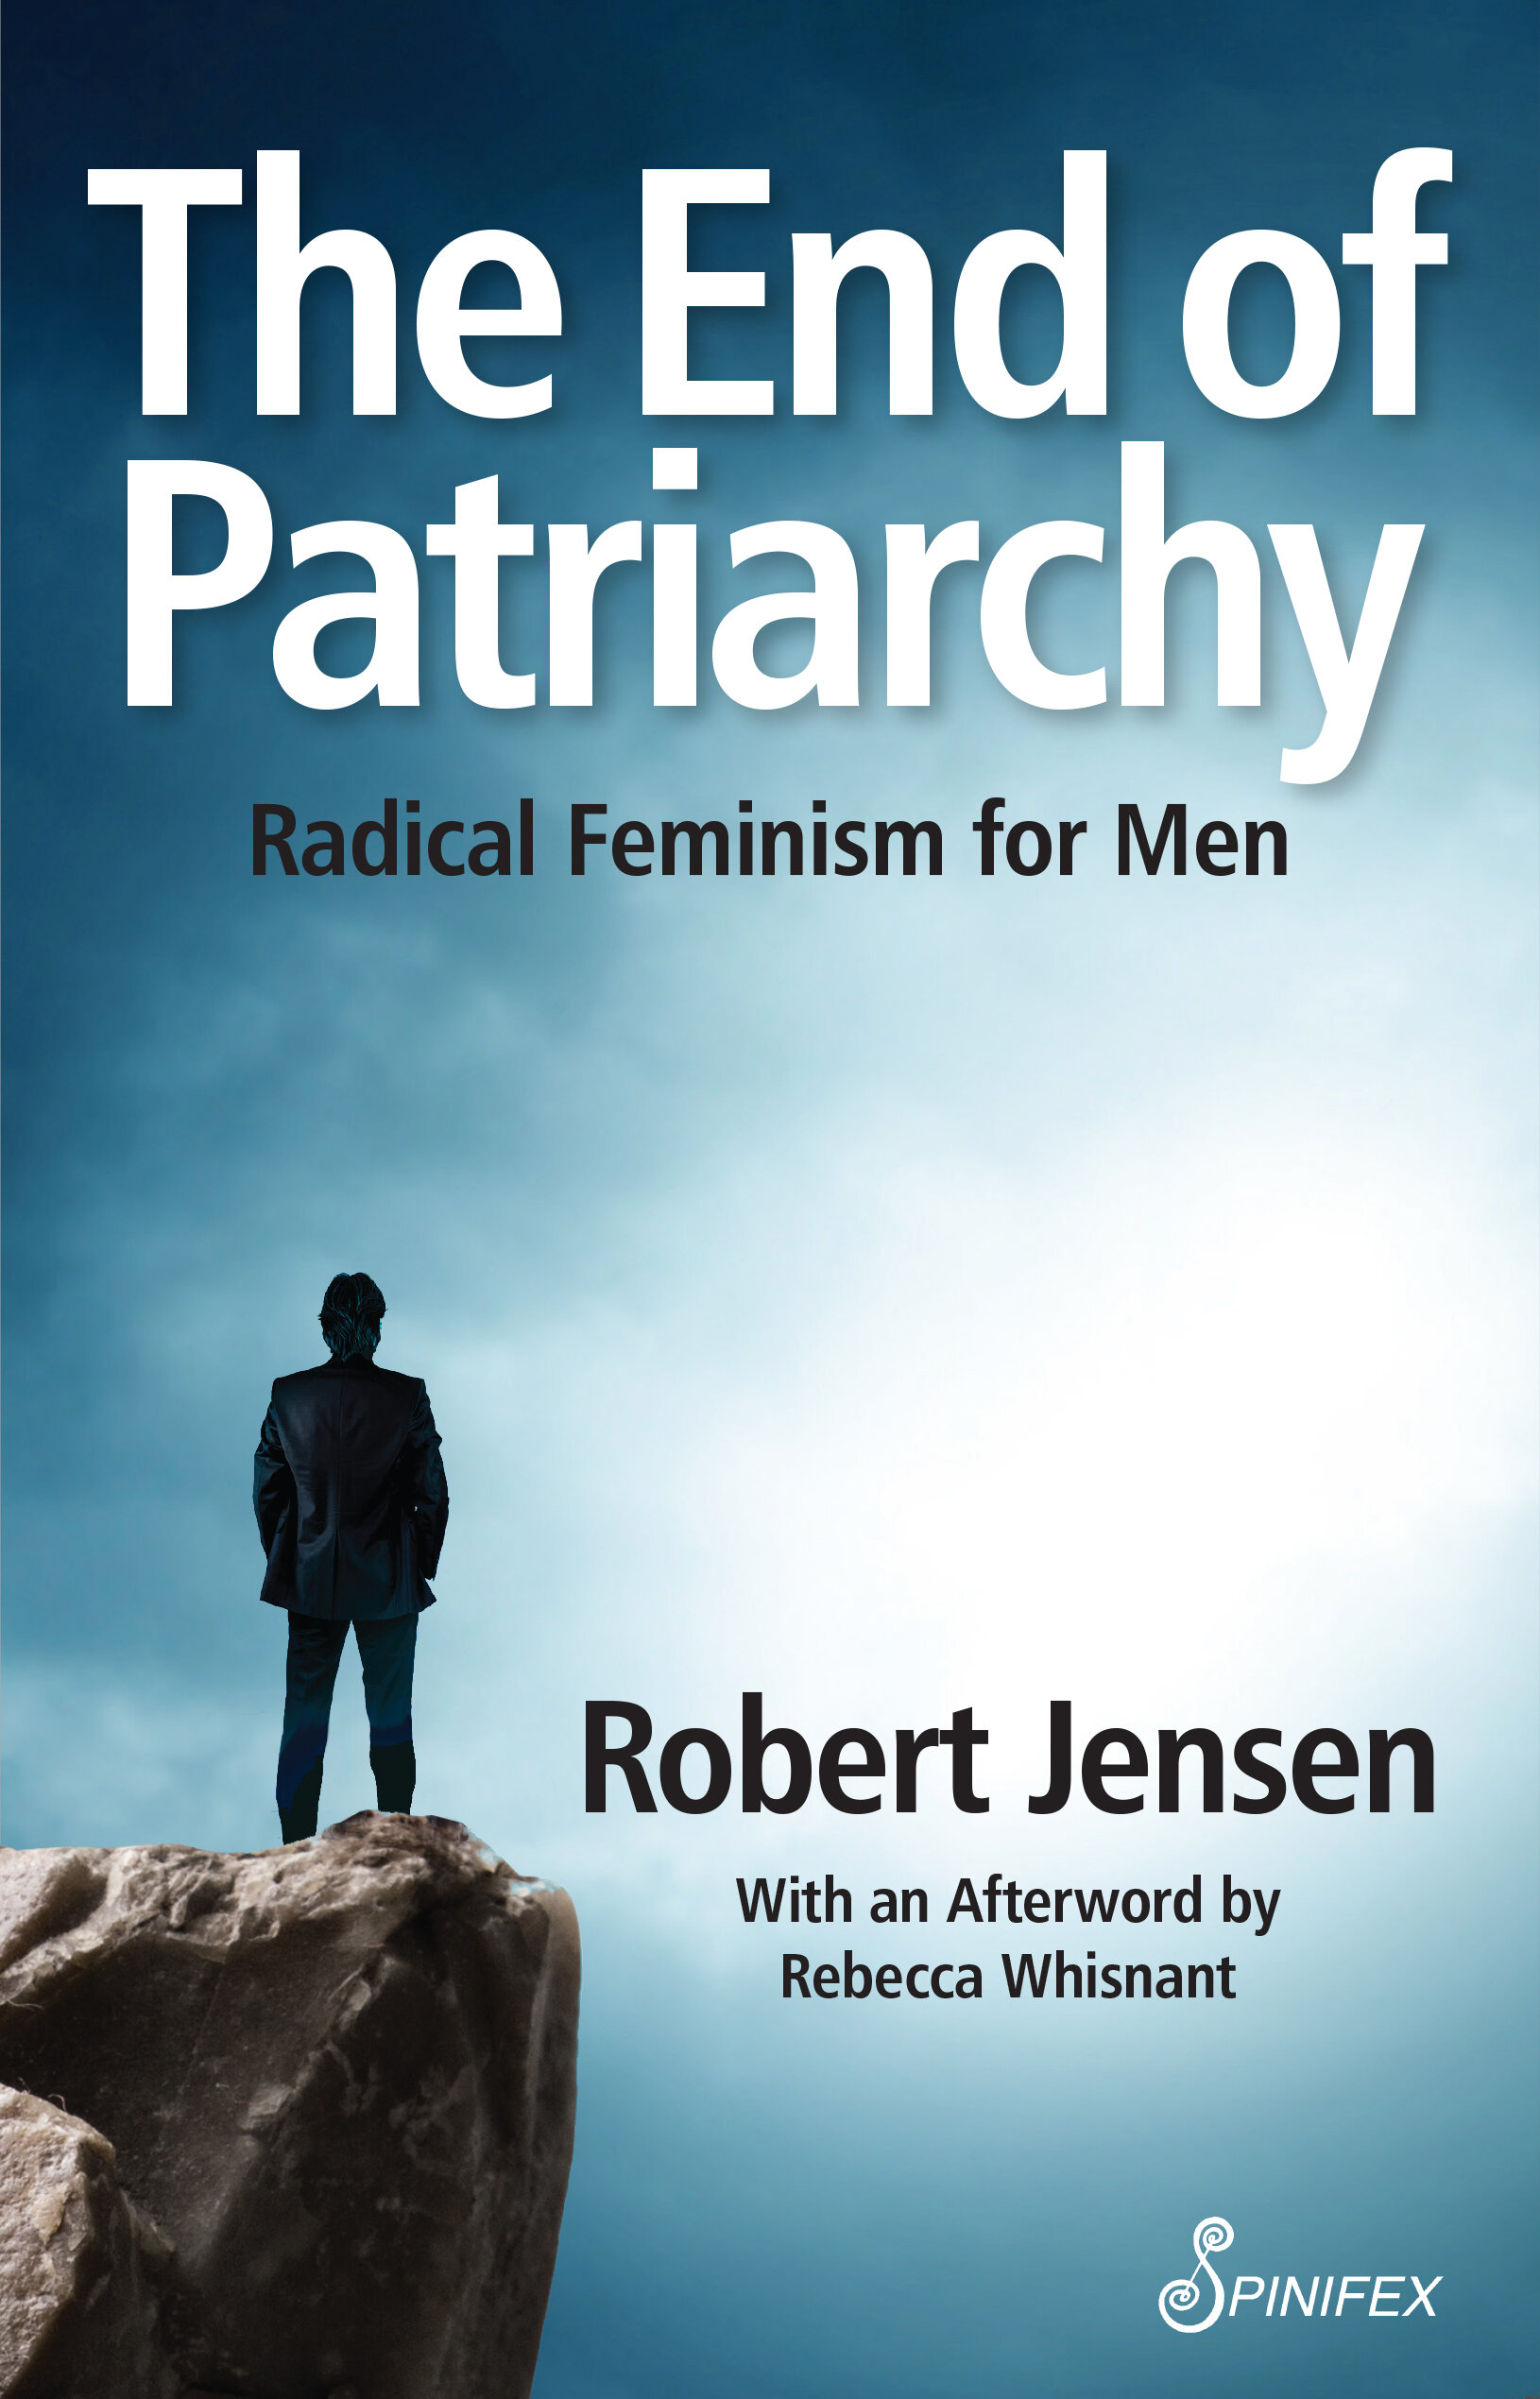 The End of Patriarchy: Radical Feminism for Men